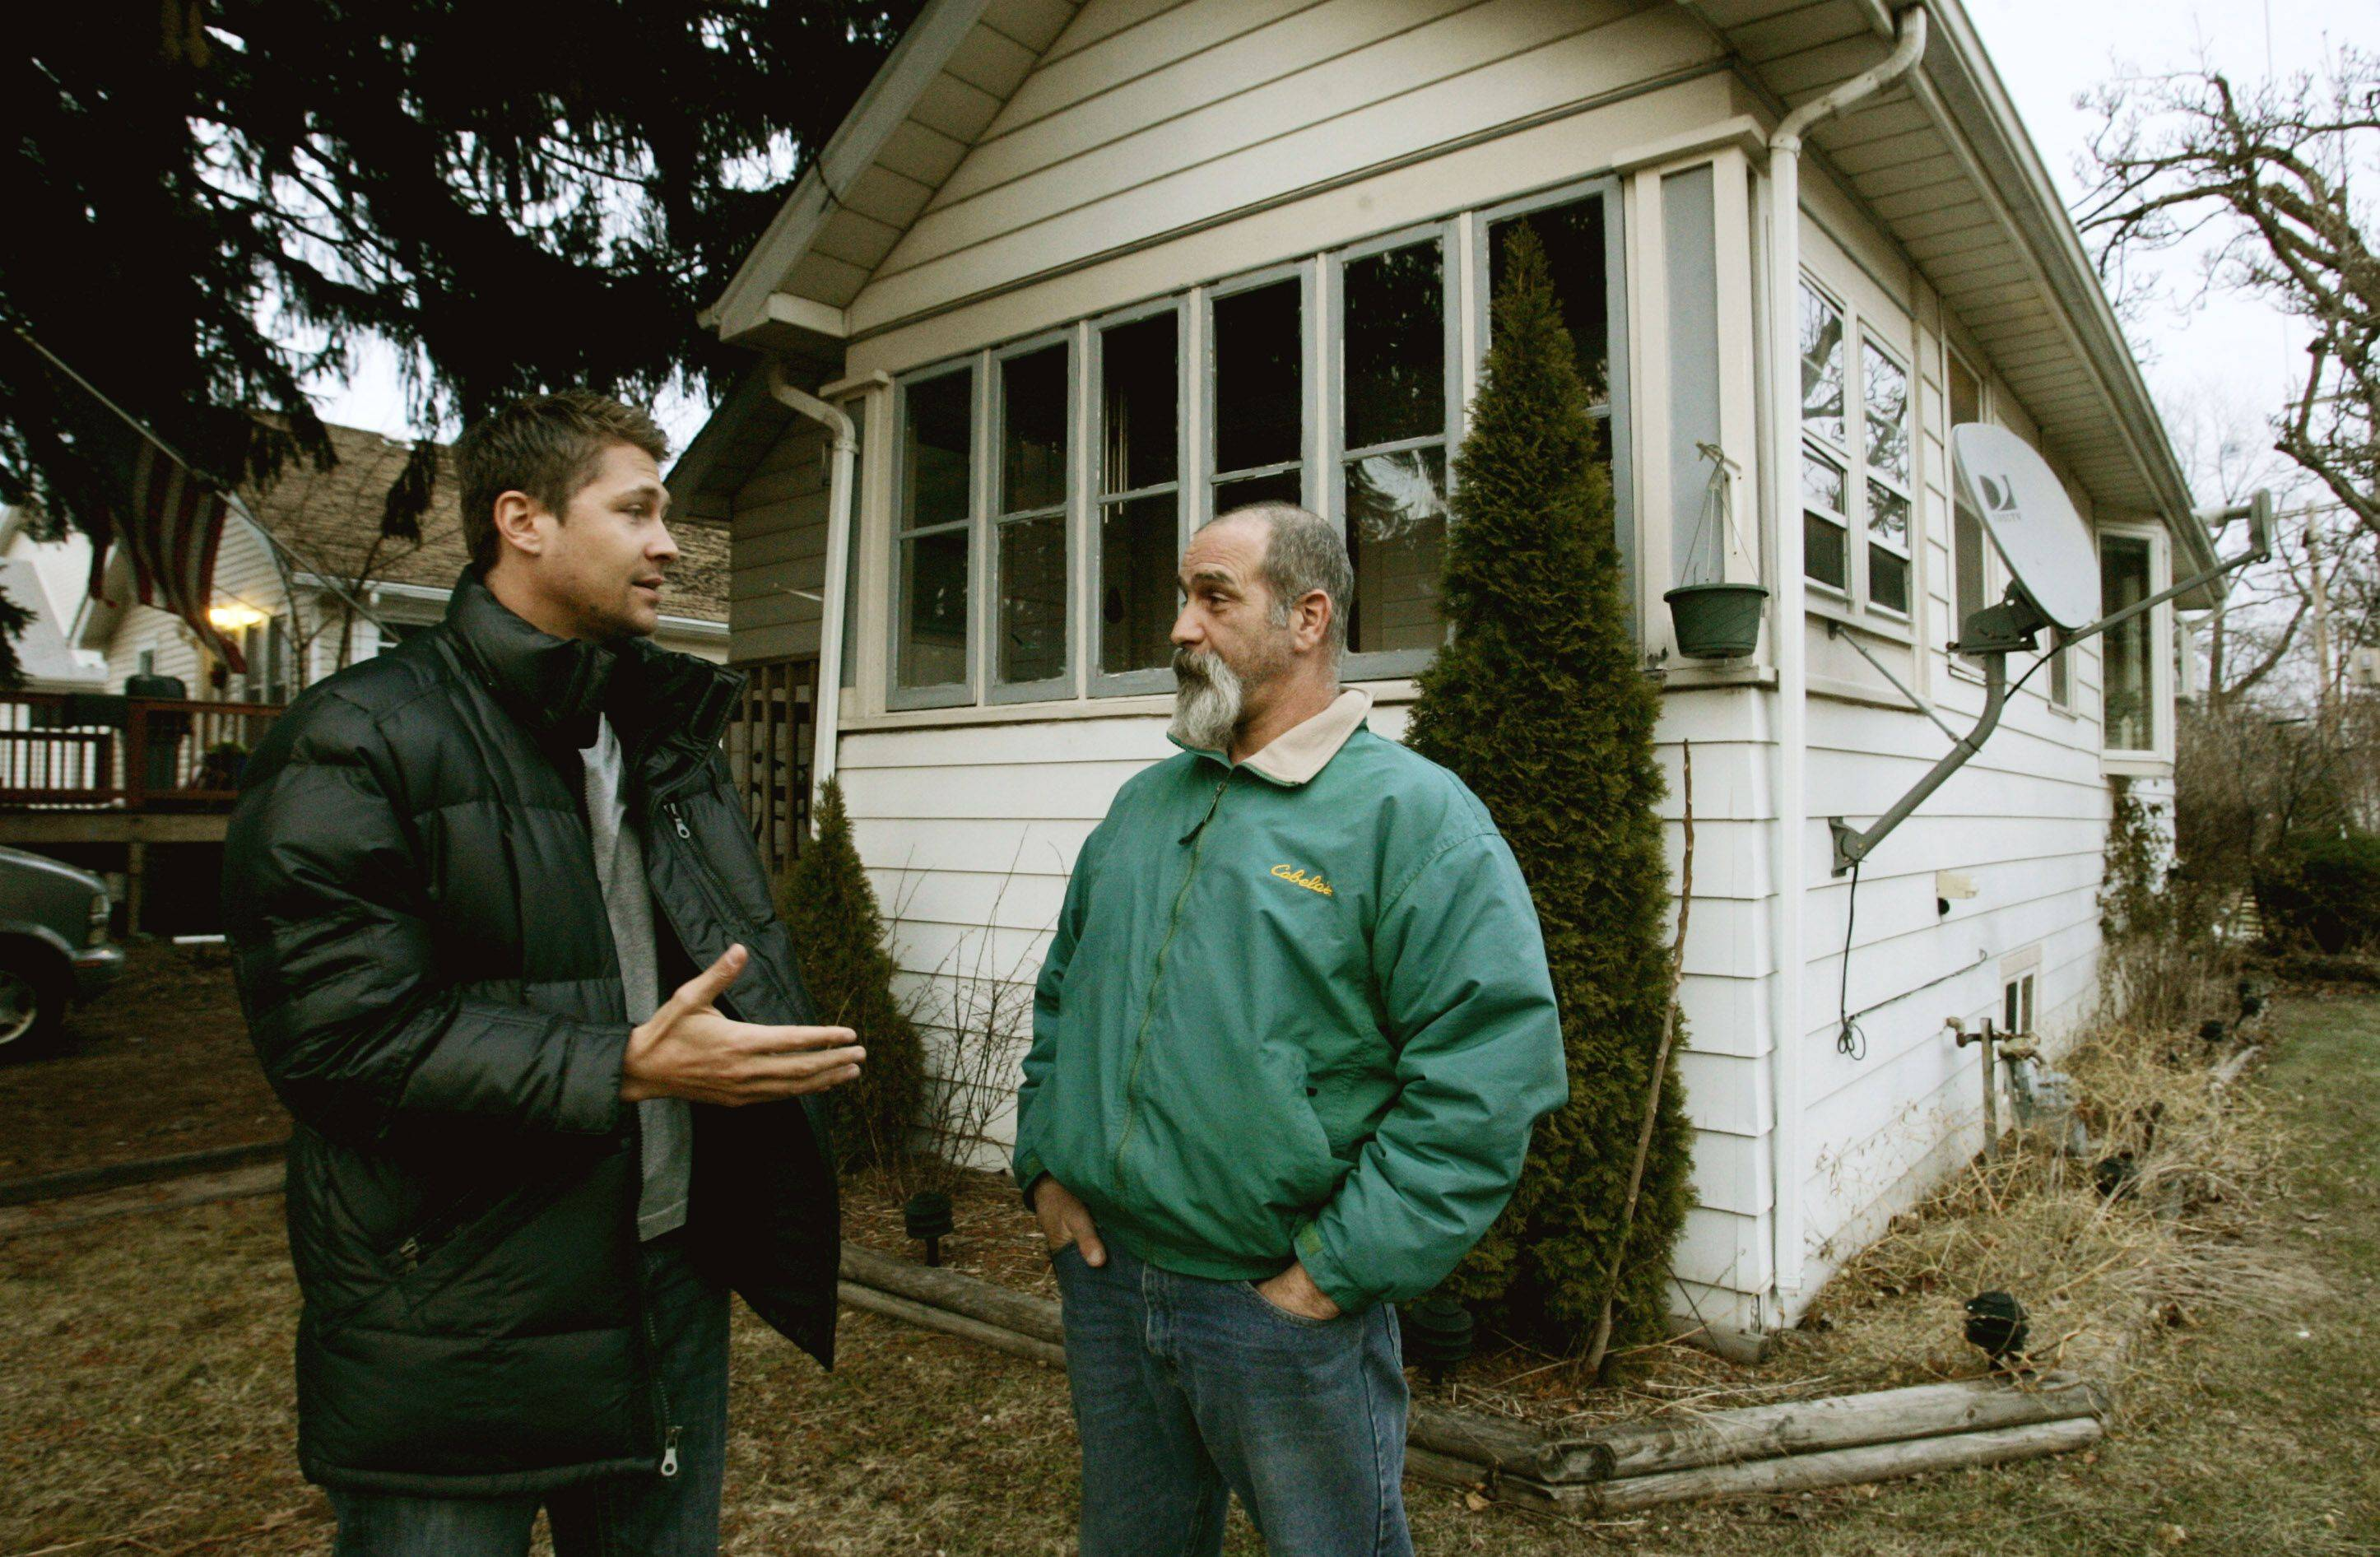 Adam Ackerman, left, a real estate investor who helped start the Foreclosure Defense Group in Rosemont, chats with homeowner David Johnson of Villa Park.